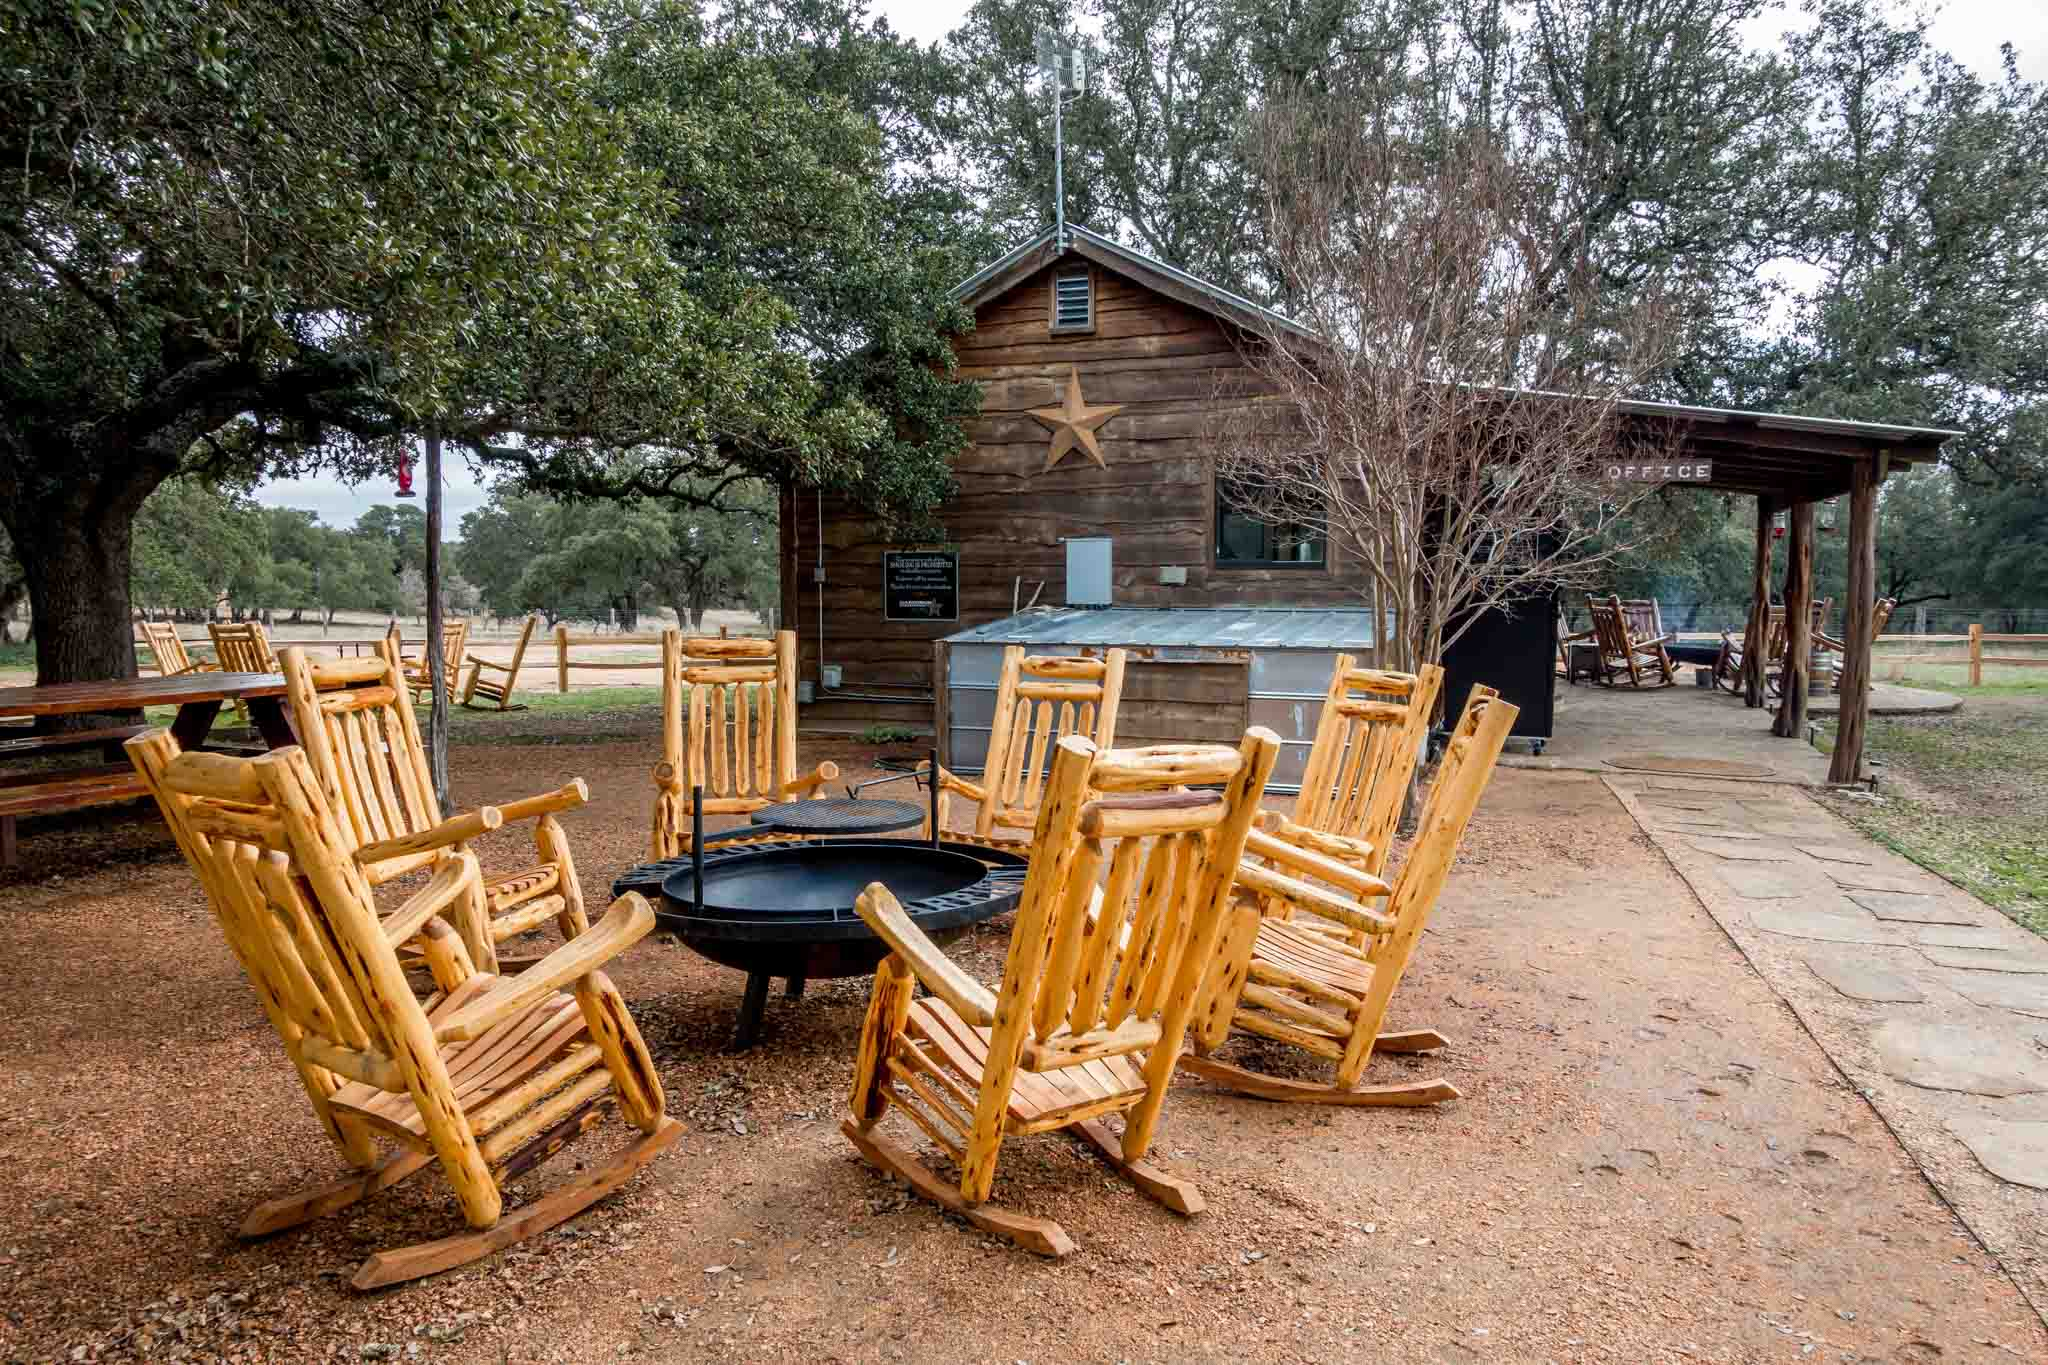 The setting at Garrison Brothers Distillery in Hye, Texas